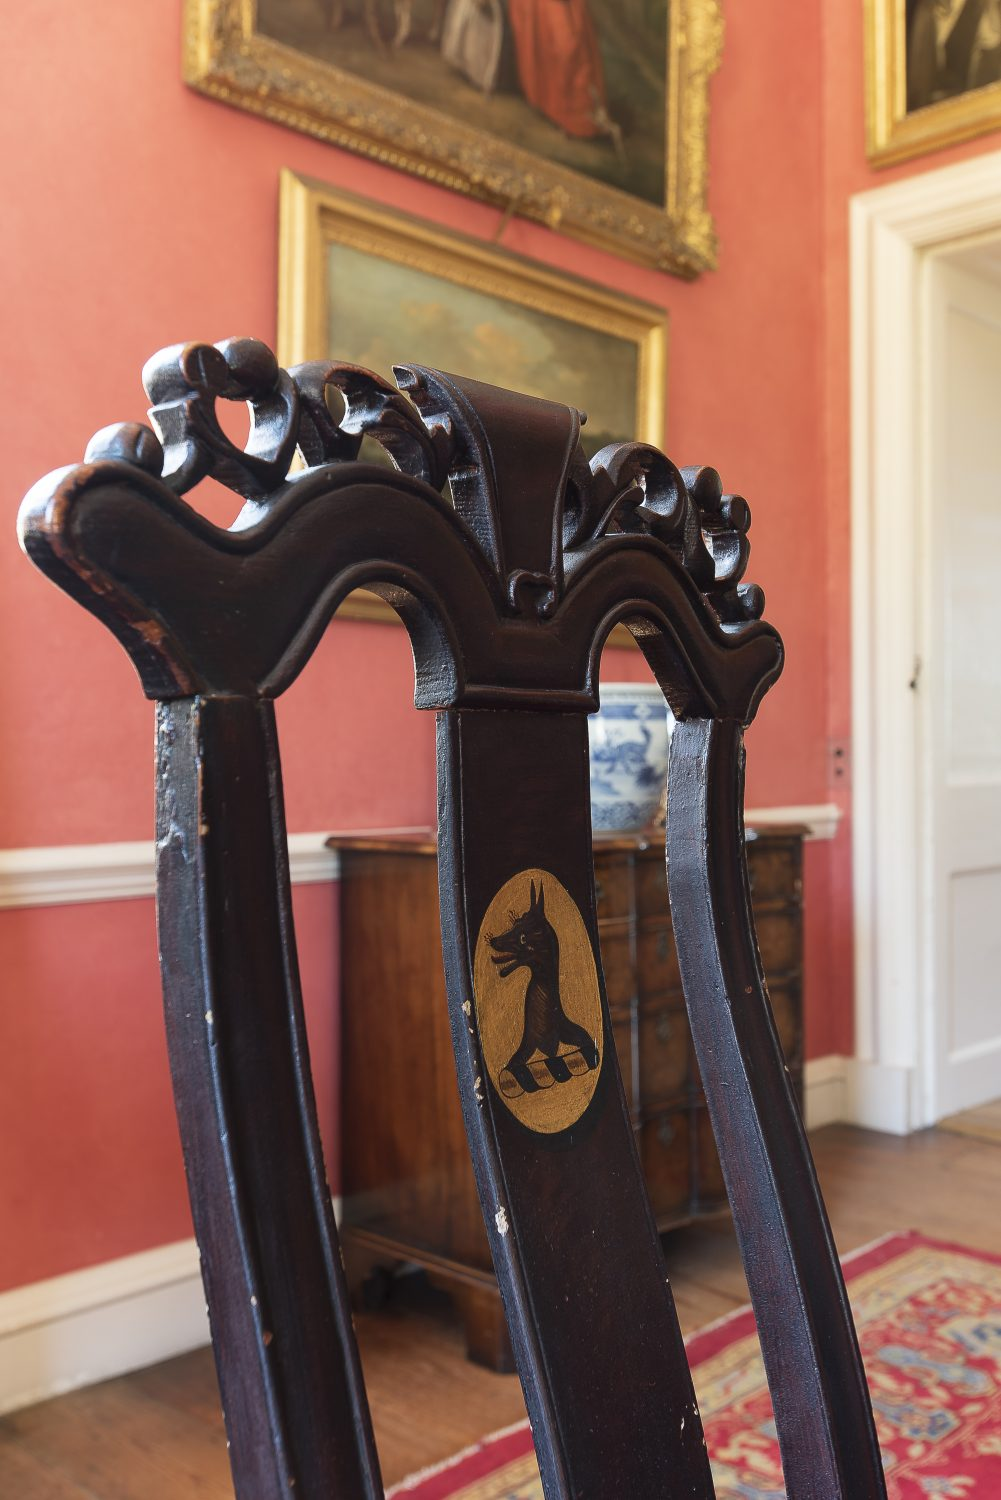 The formal dining room's chairs feature the wolf head that is in the family crest